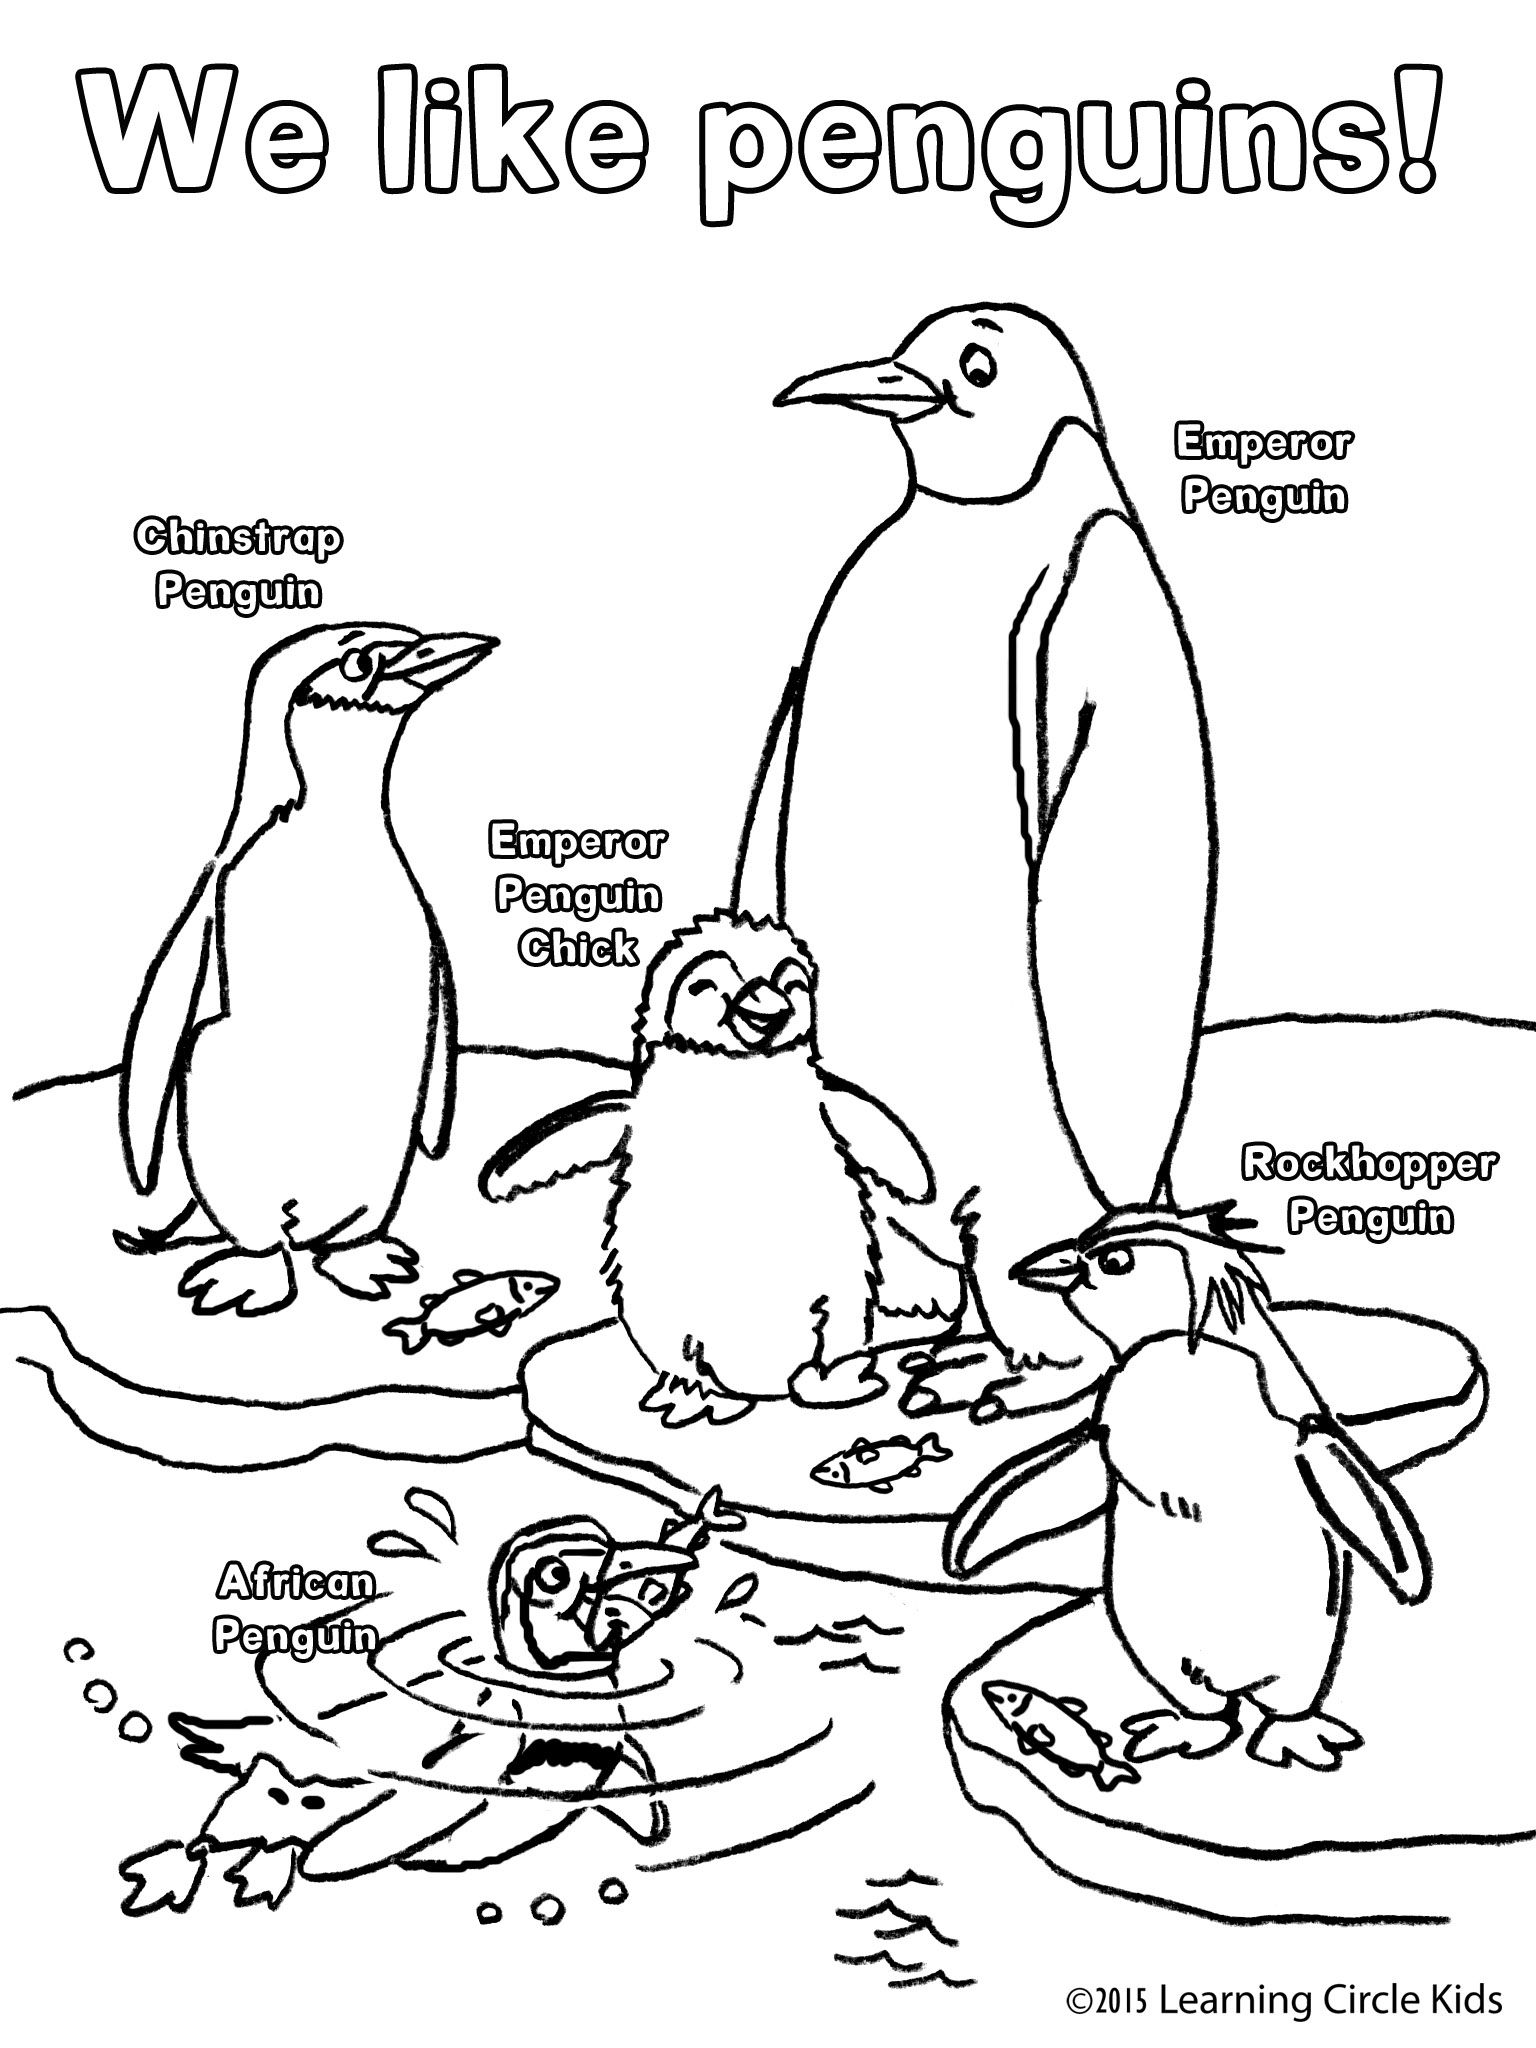 Free Penguin Coloring Page From Http Readerbee Com Penguin